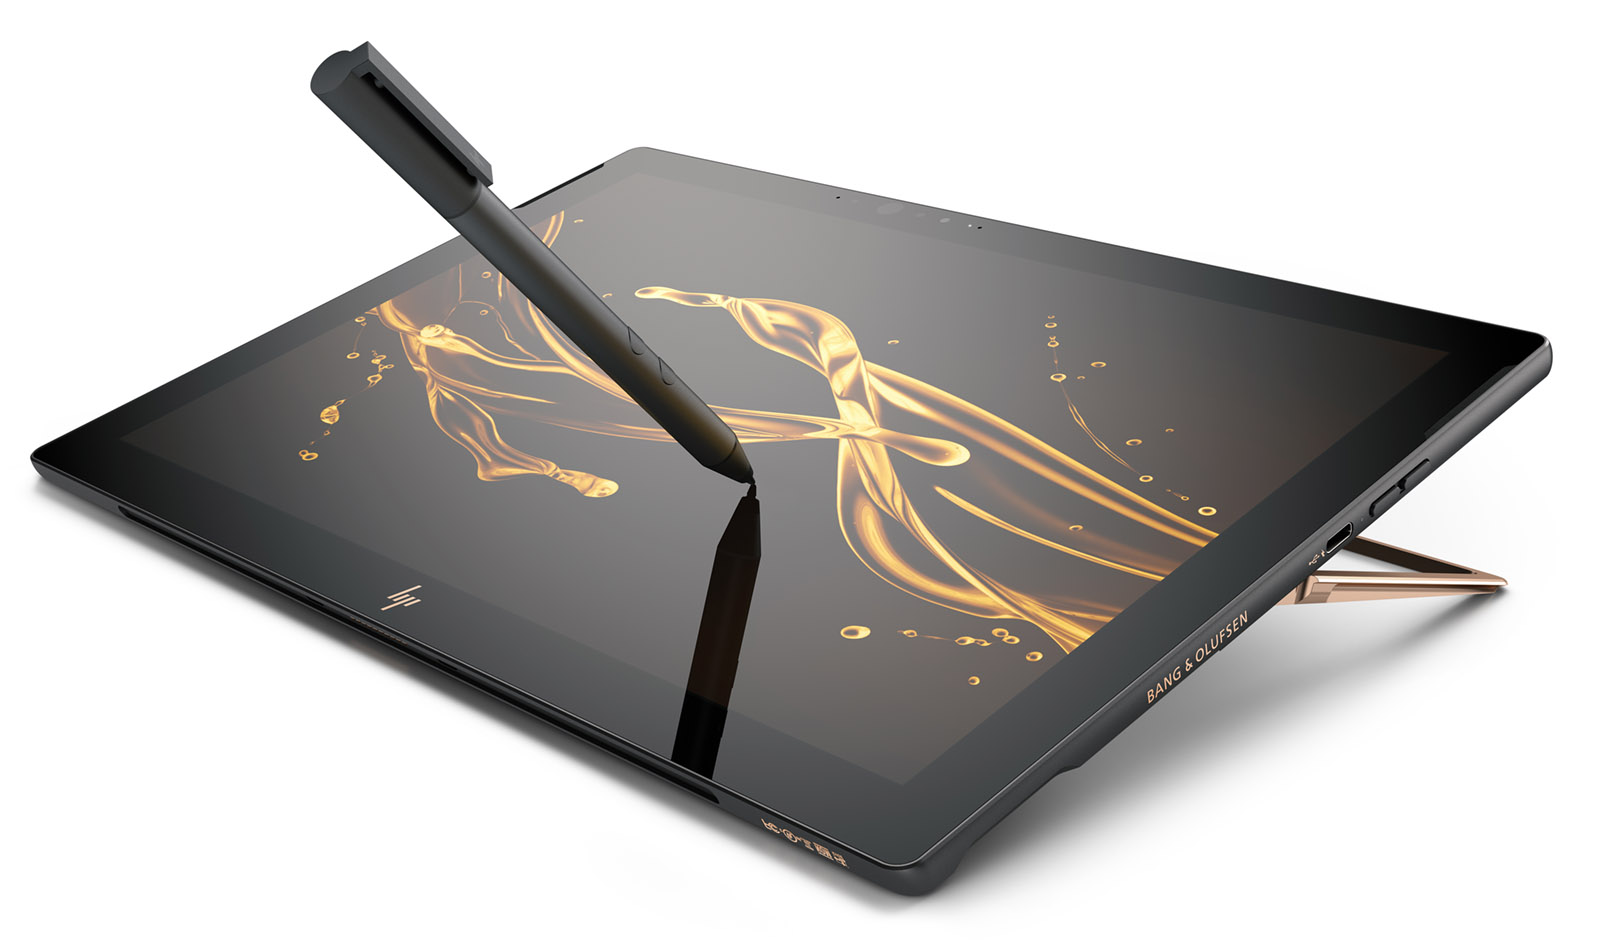 HP debuts a tablet for artists at Cannes for some reason